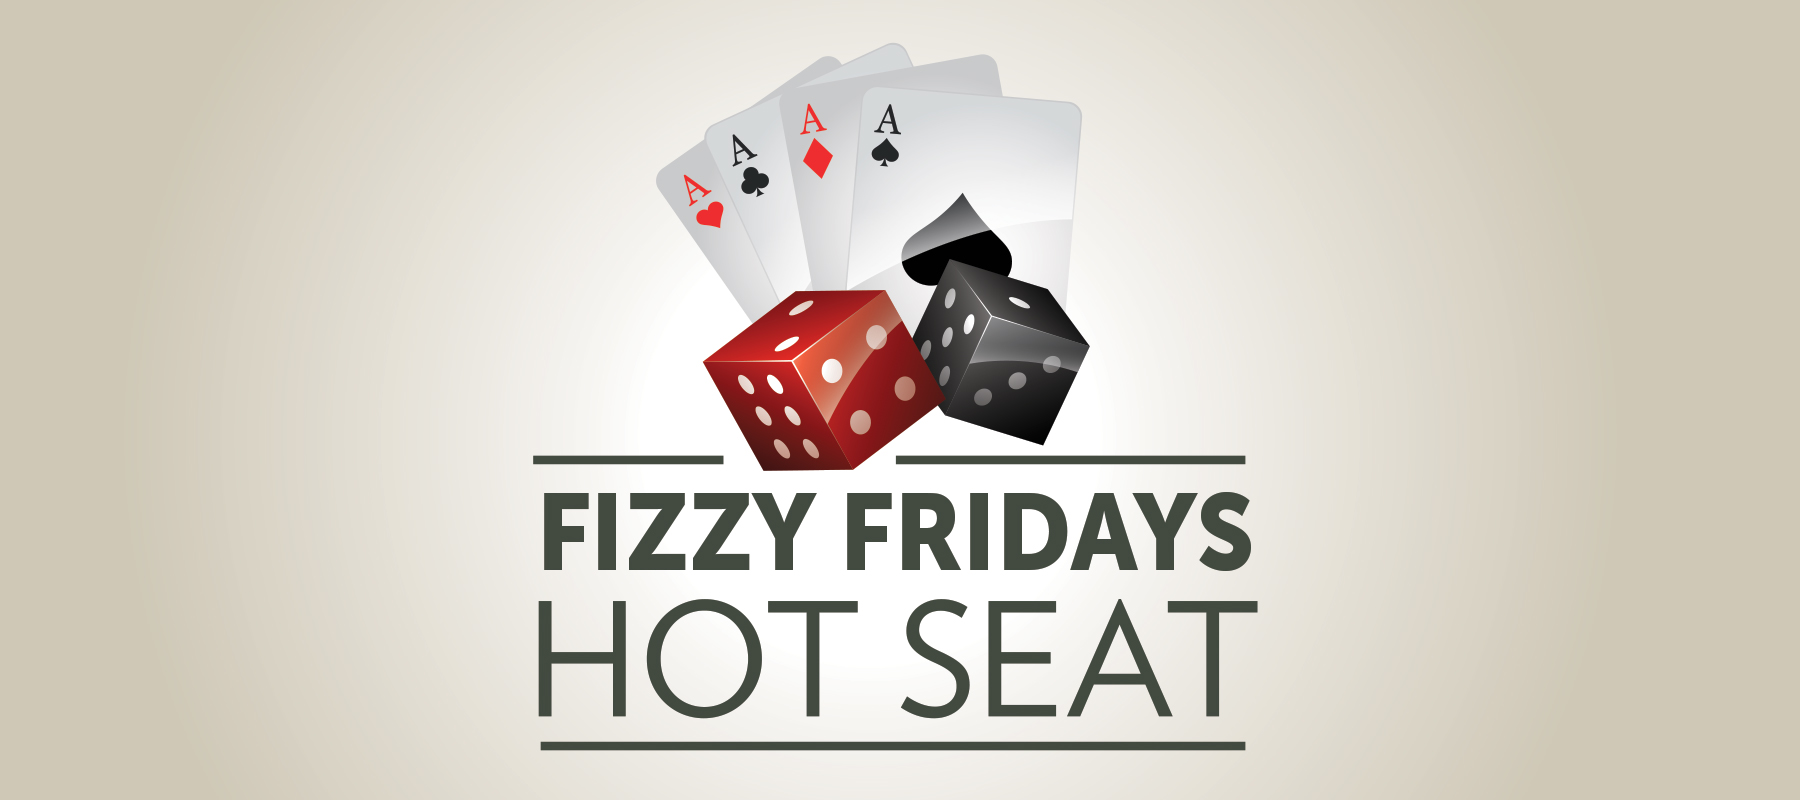 Fizzy Fridays Hot Seat